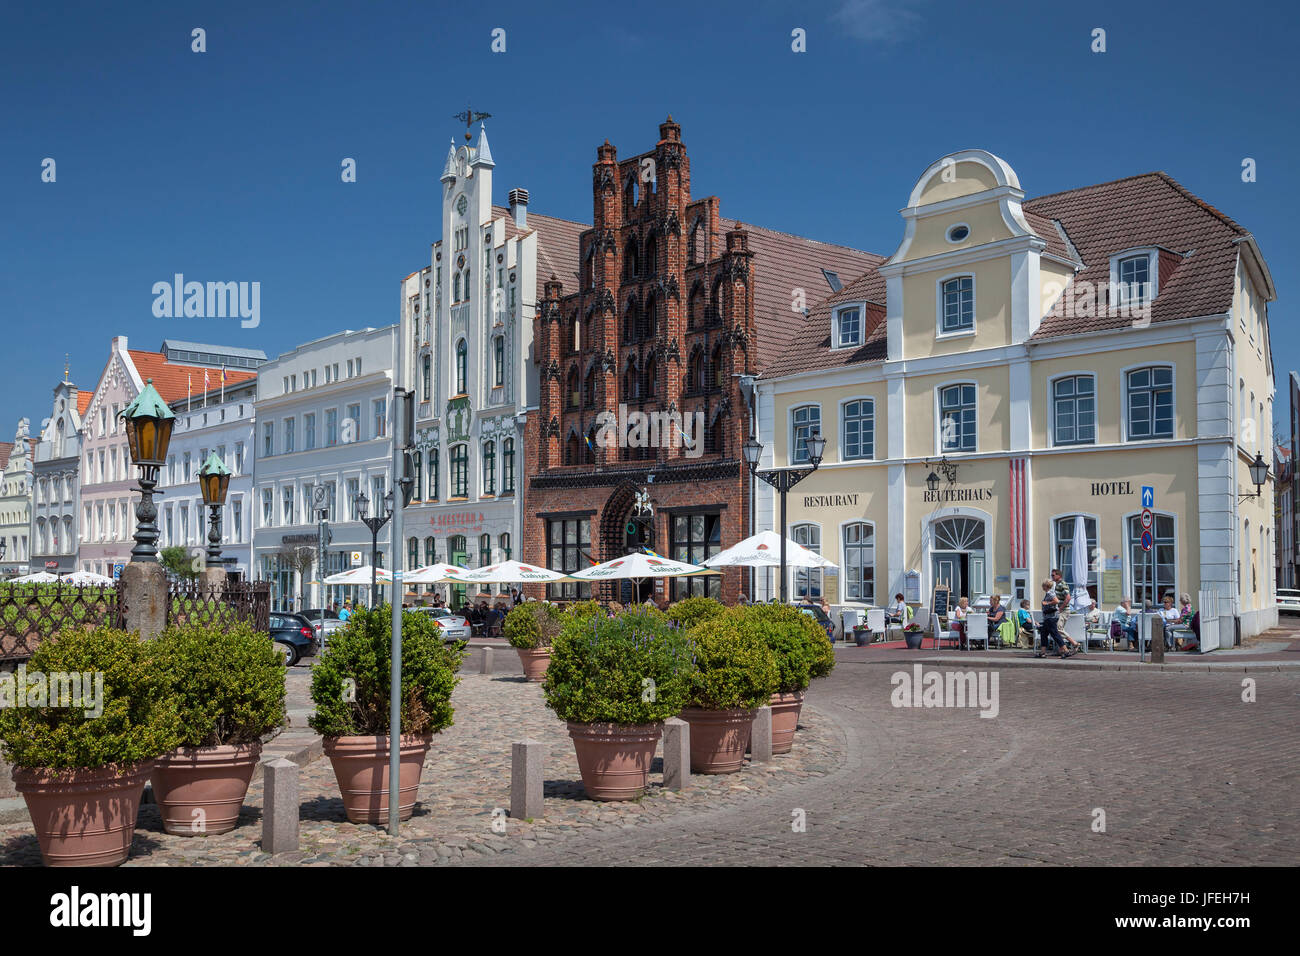 Town houses on the marketplace, Hanseatic town Wismar, Mecklenburg, Mecklenburg-West Pomerania, Germany Stock Photo